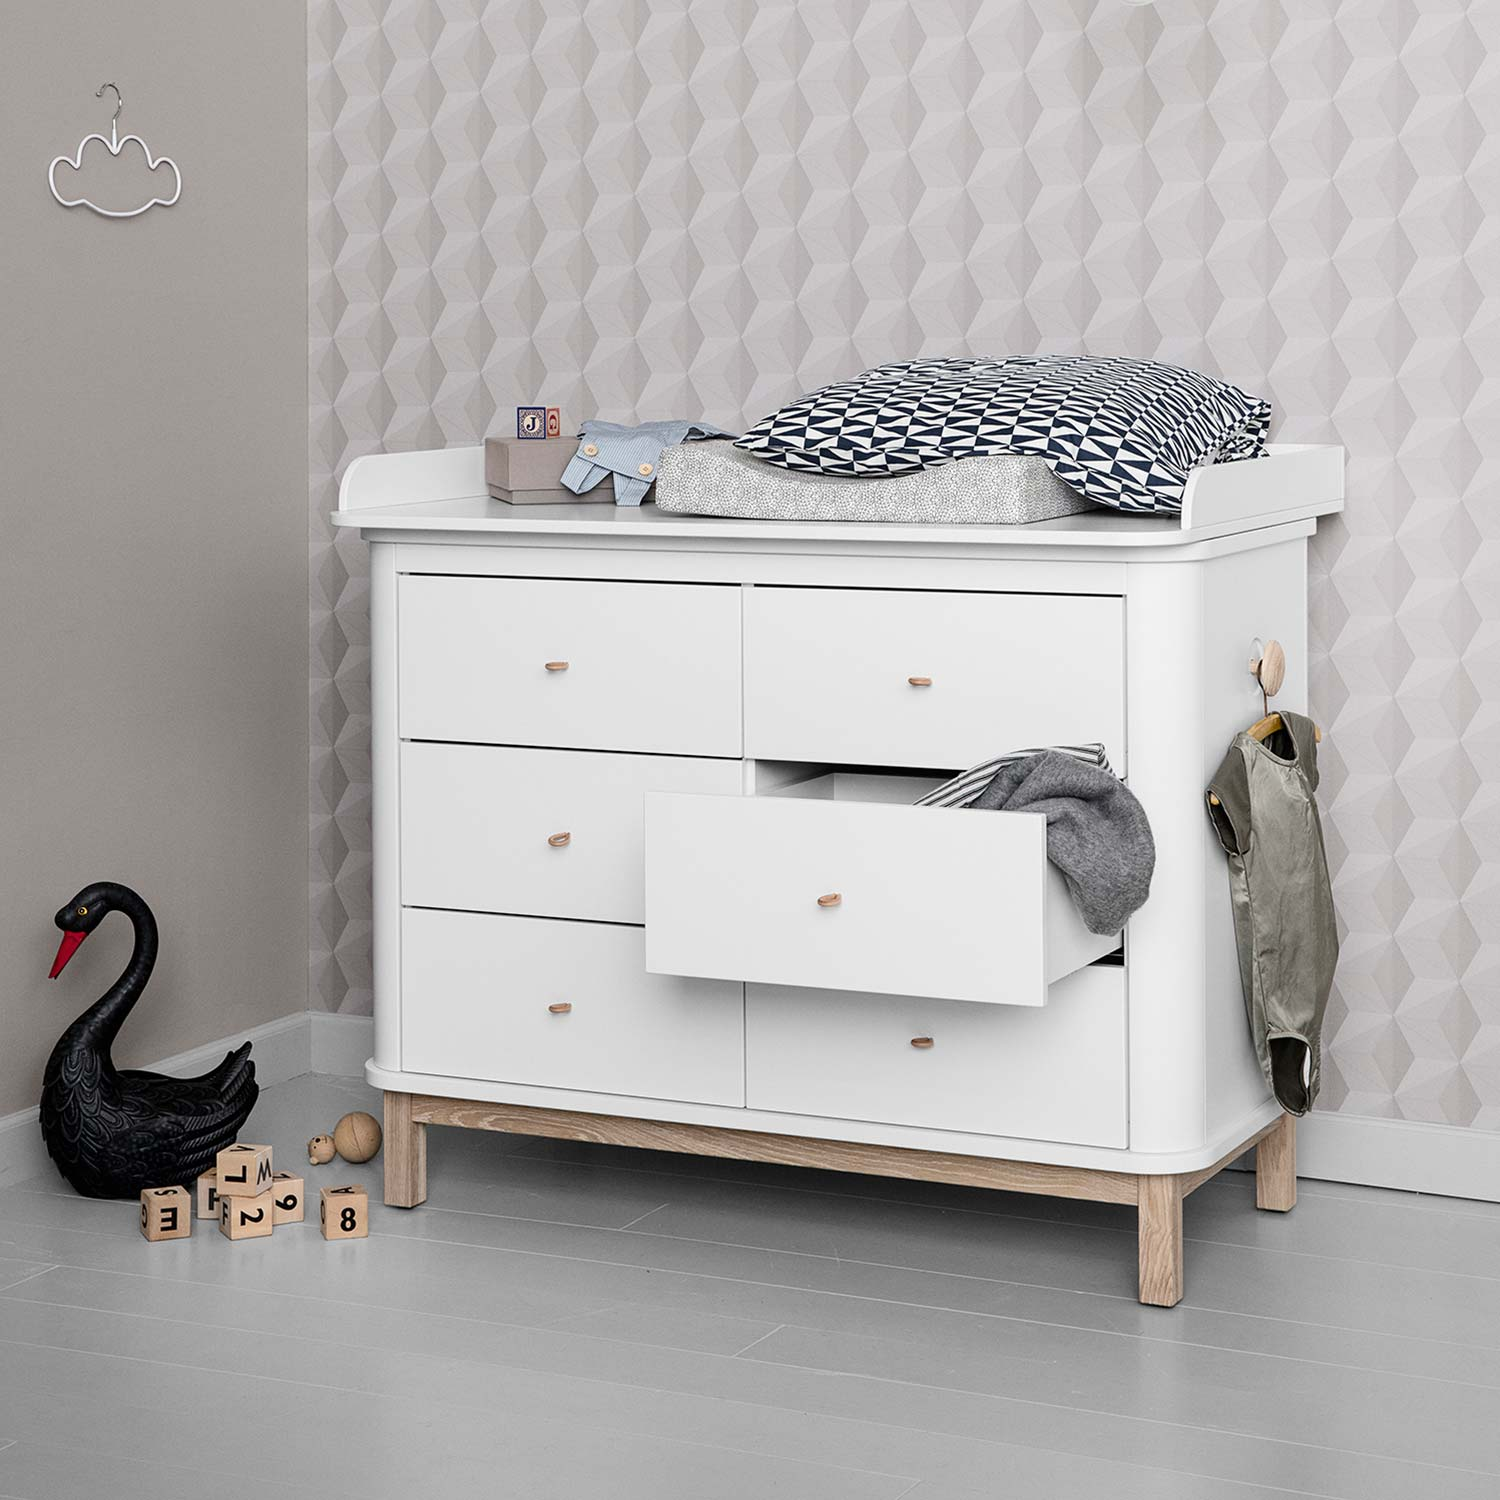 Oliver Furniture Wood Kommode 6 Schubladen Eiche + Wickelplatte groß